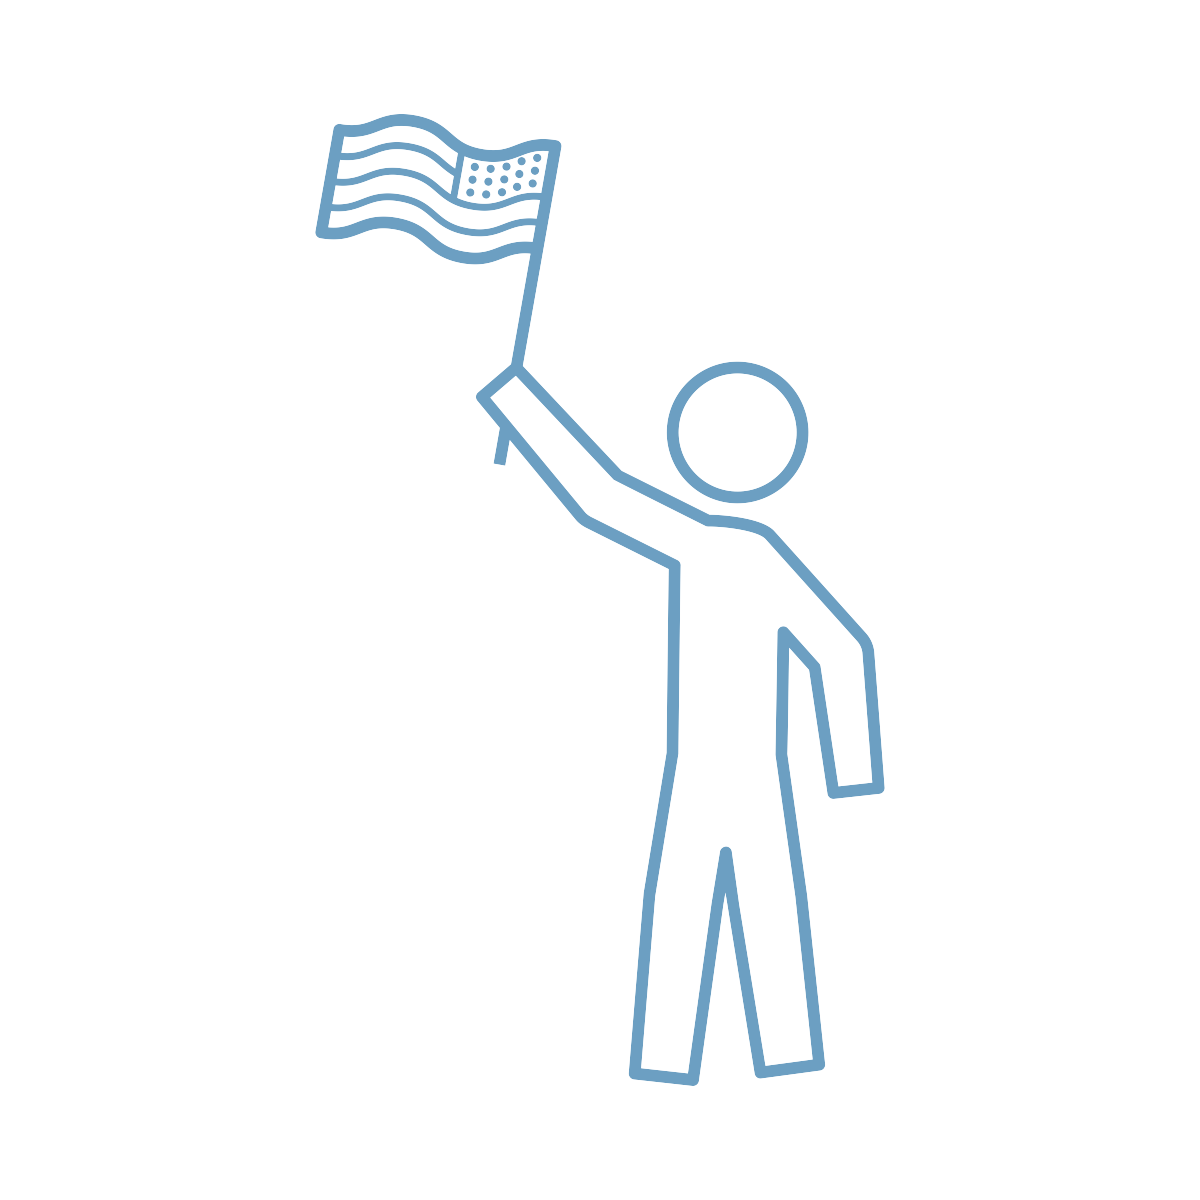 Outline of person holding an American flag